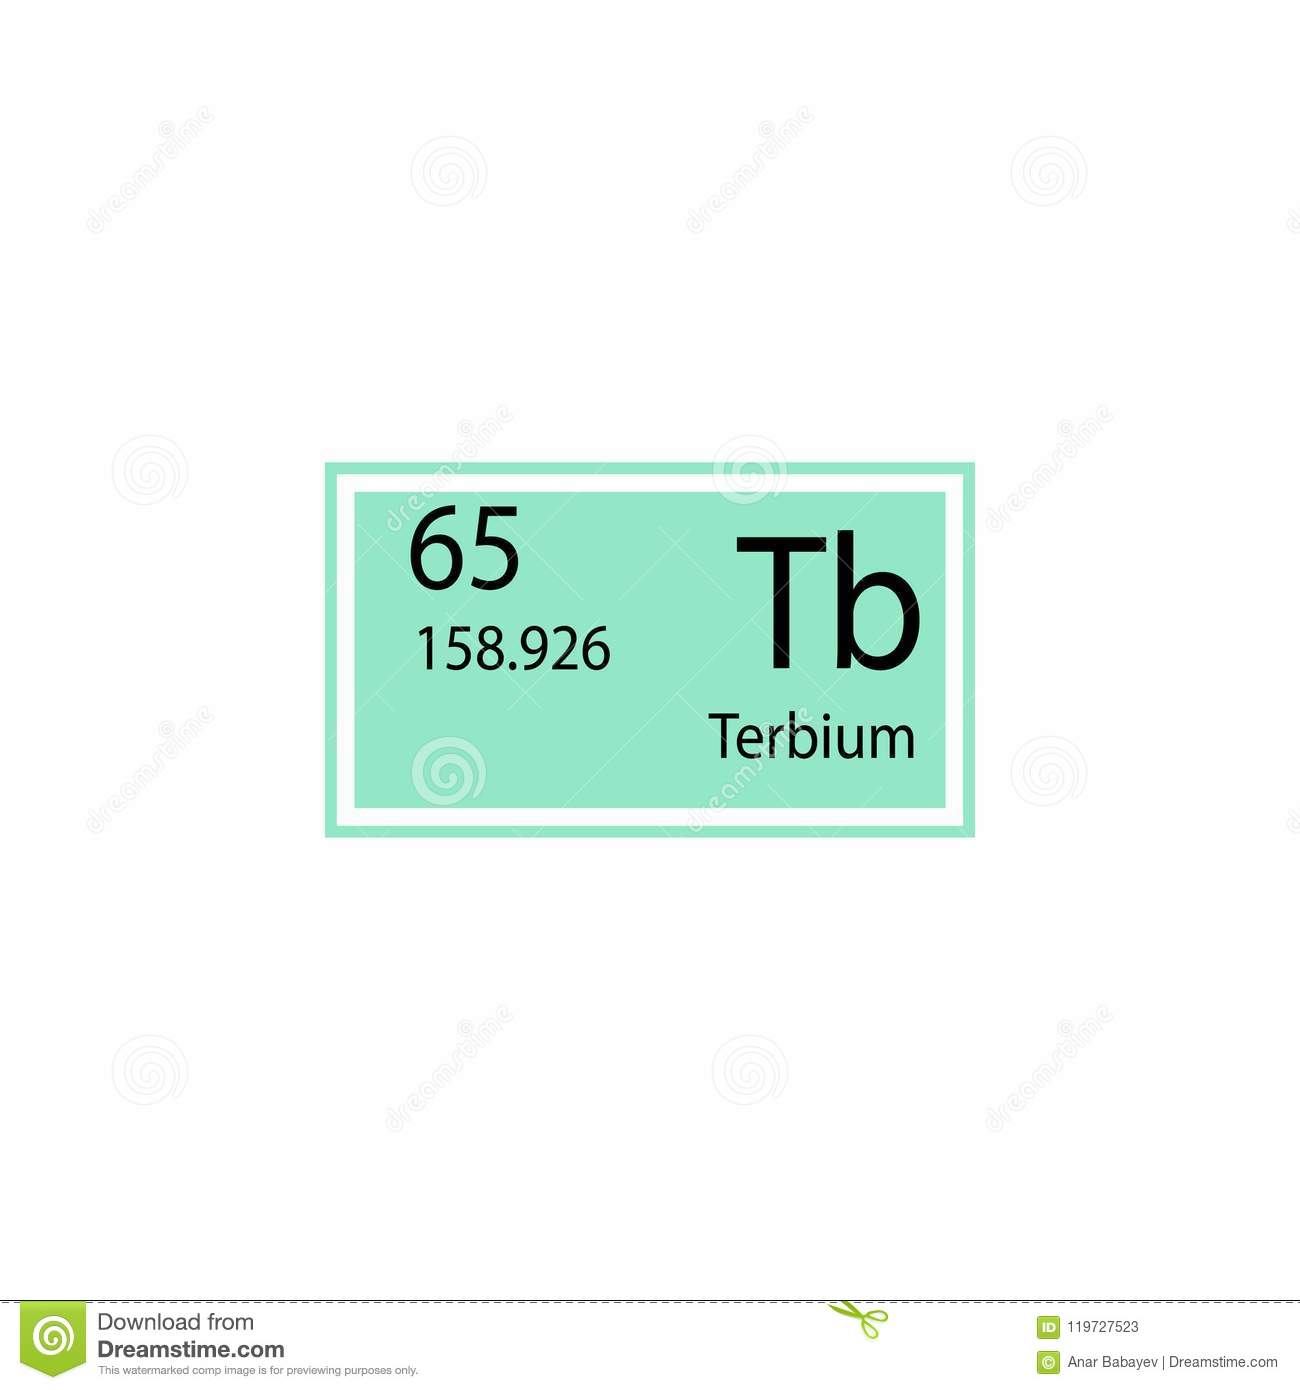 Periodic table element terbium icon element of chemical sign icon periodic table element terbium icon element of chemical sign icon premium quality graphic design icon signs and symbols collection icon for websites urtaz Images